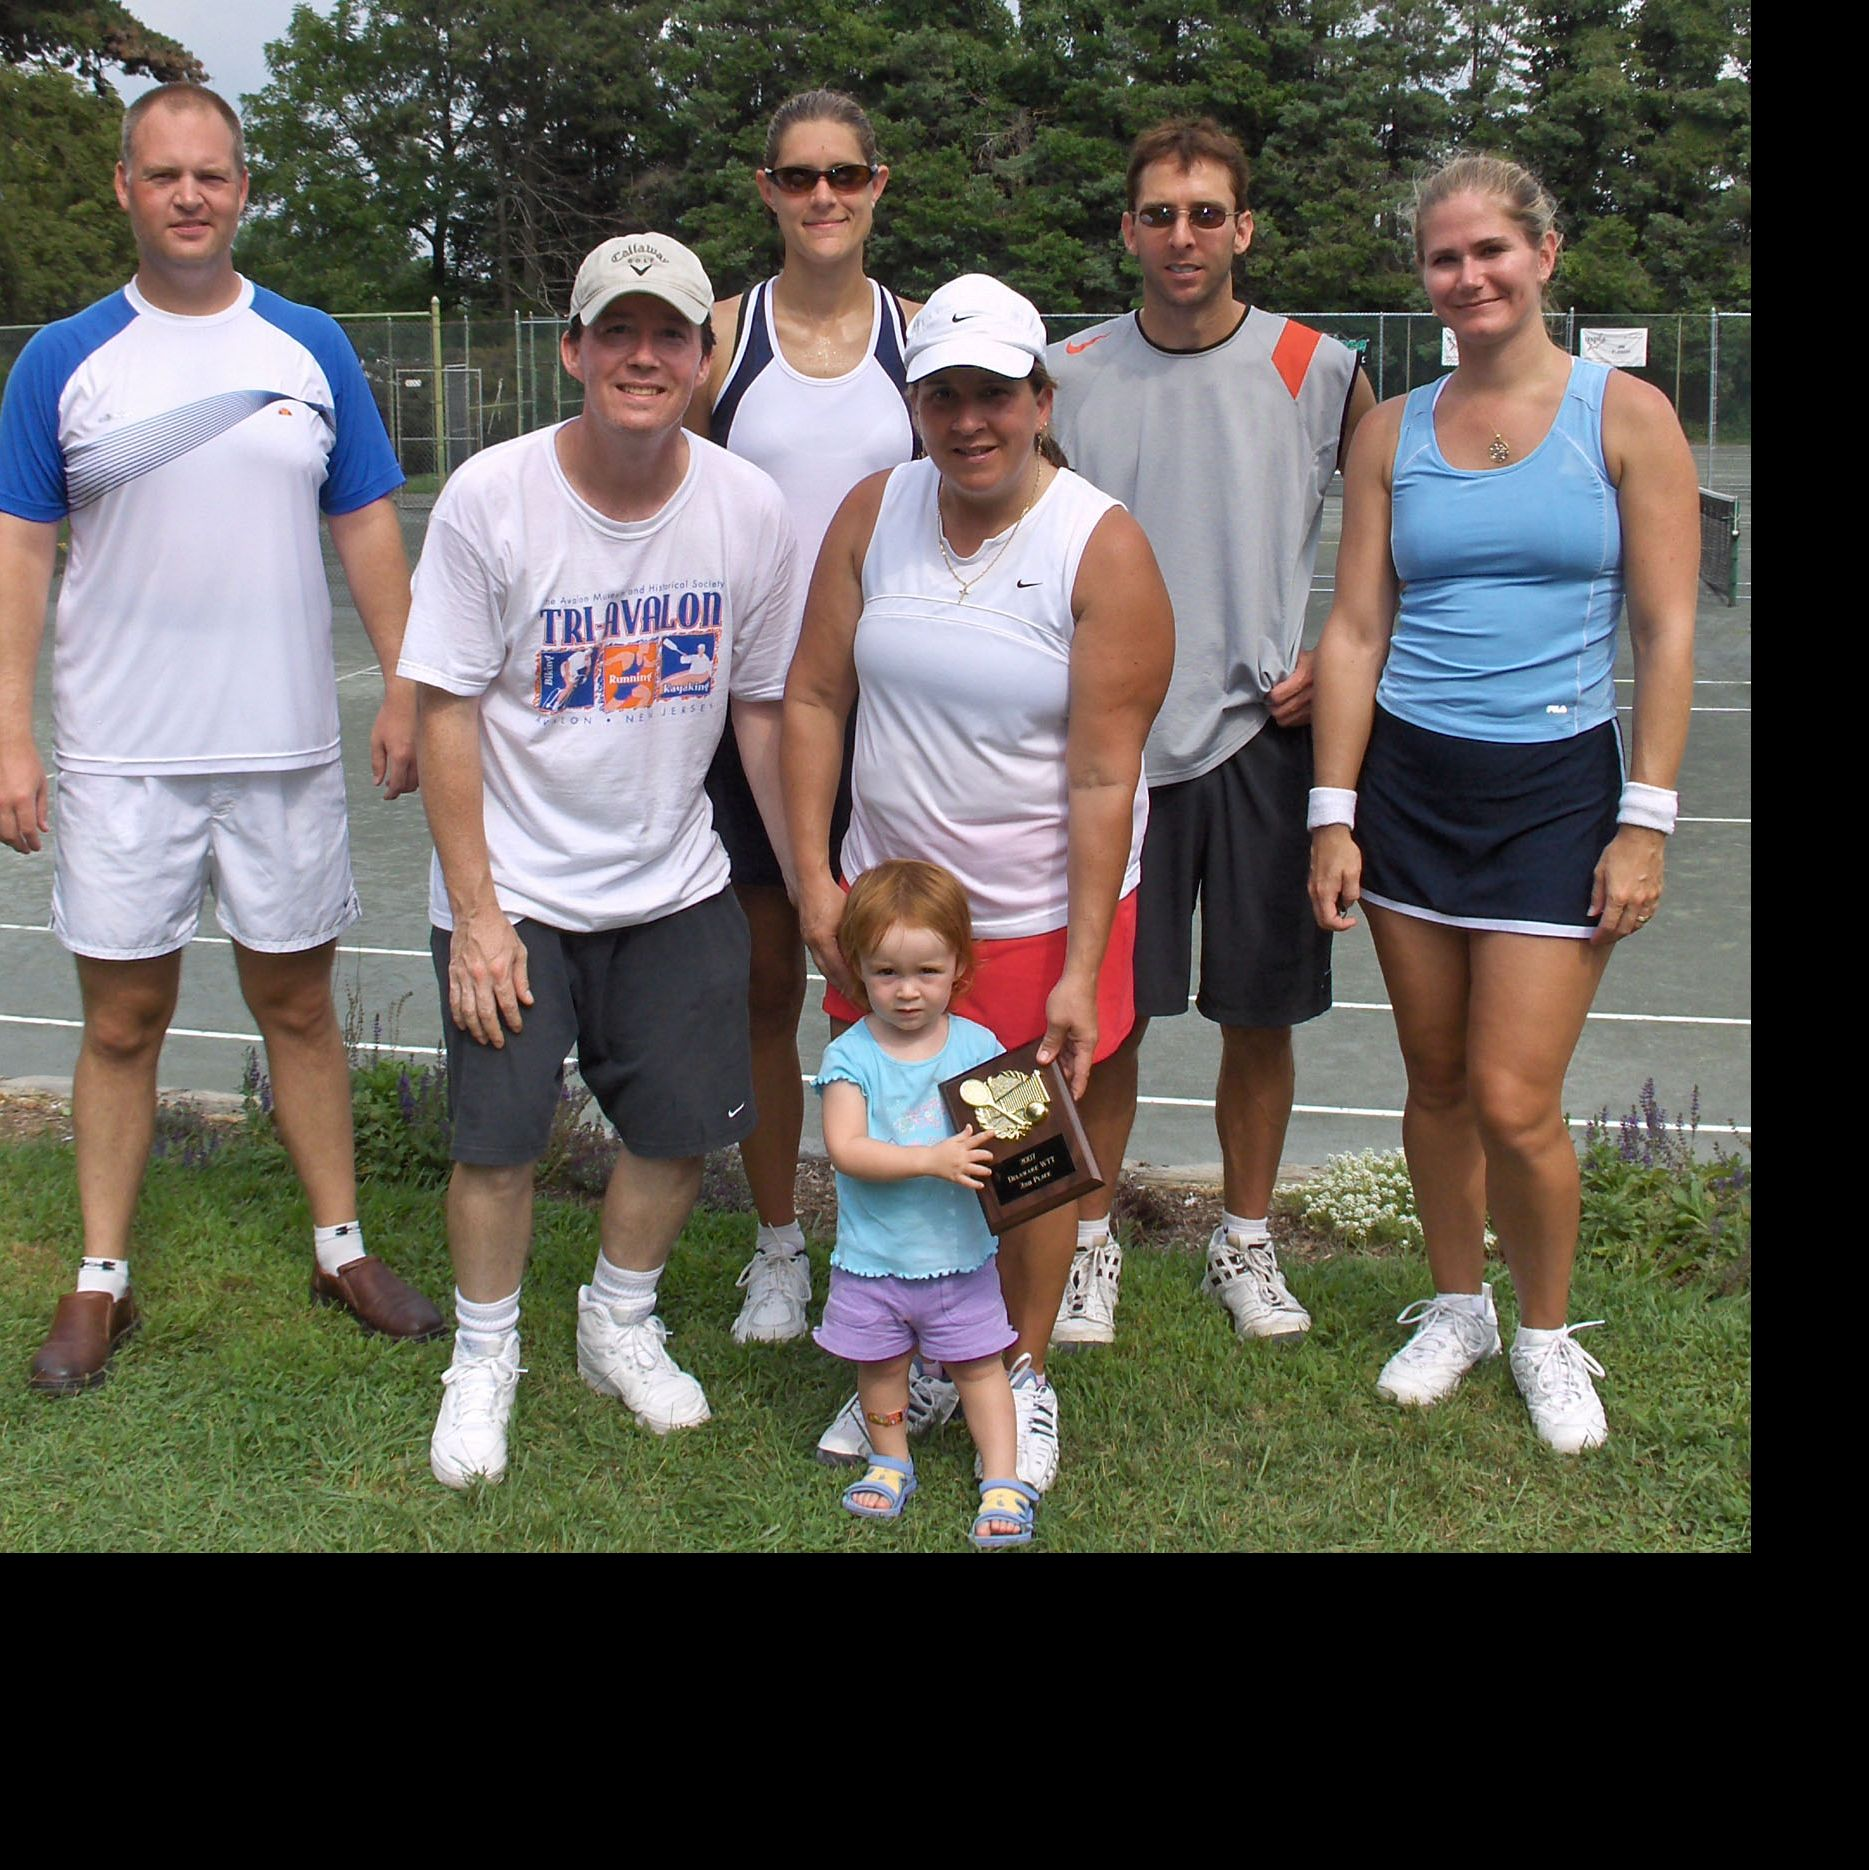 Team Tennis the Menace